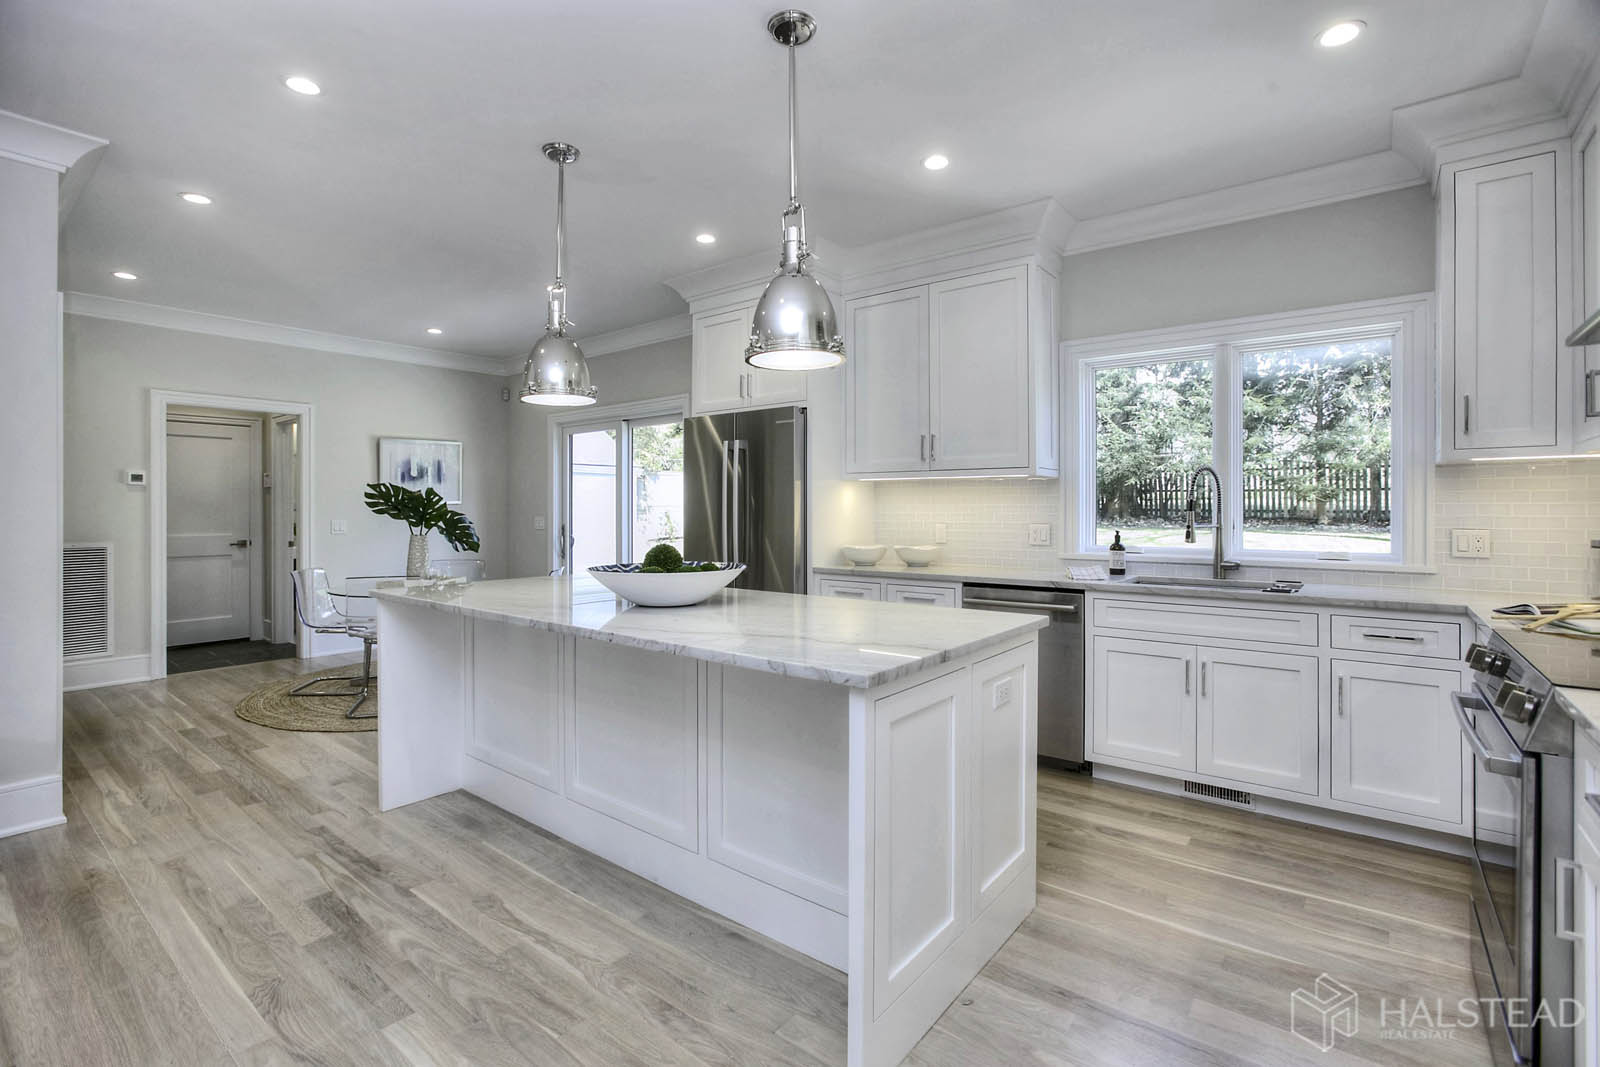 9 Miles Road, Darien, Connecticut, 06820, $1,850,000, Property For Sale, Halstead Real Estate, Photo 8